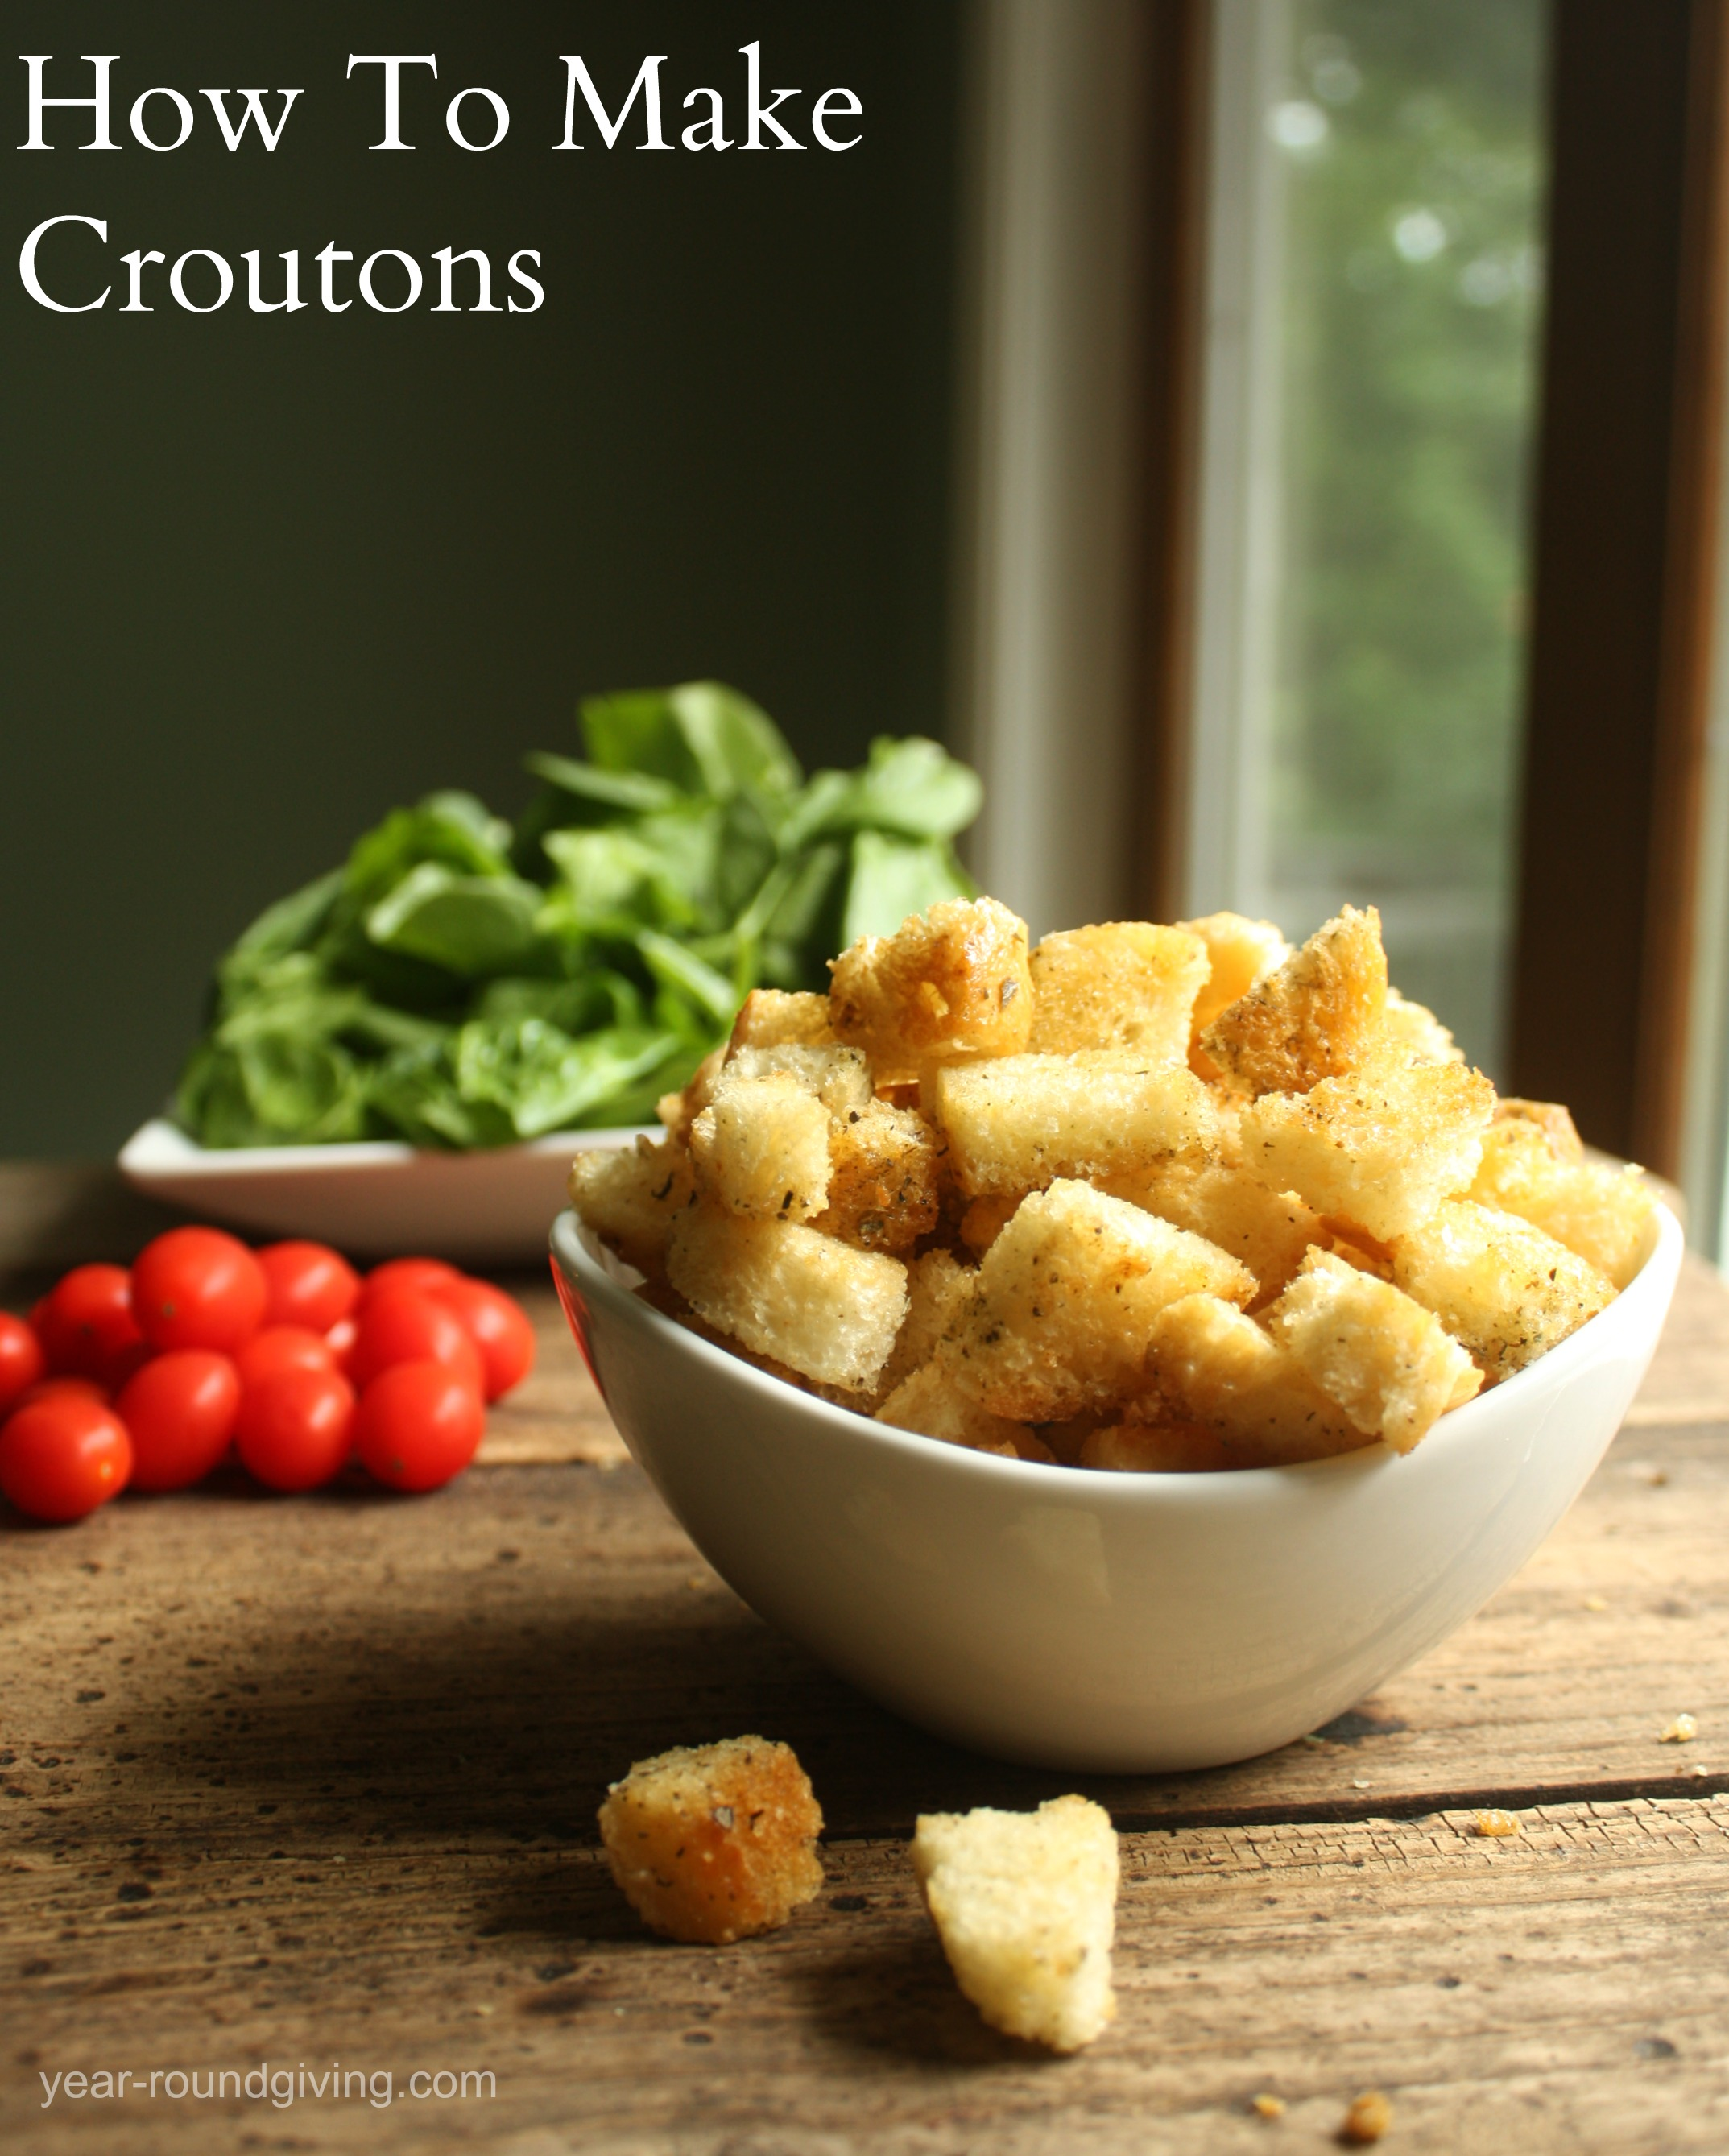 Croutons with text